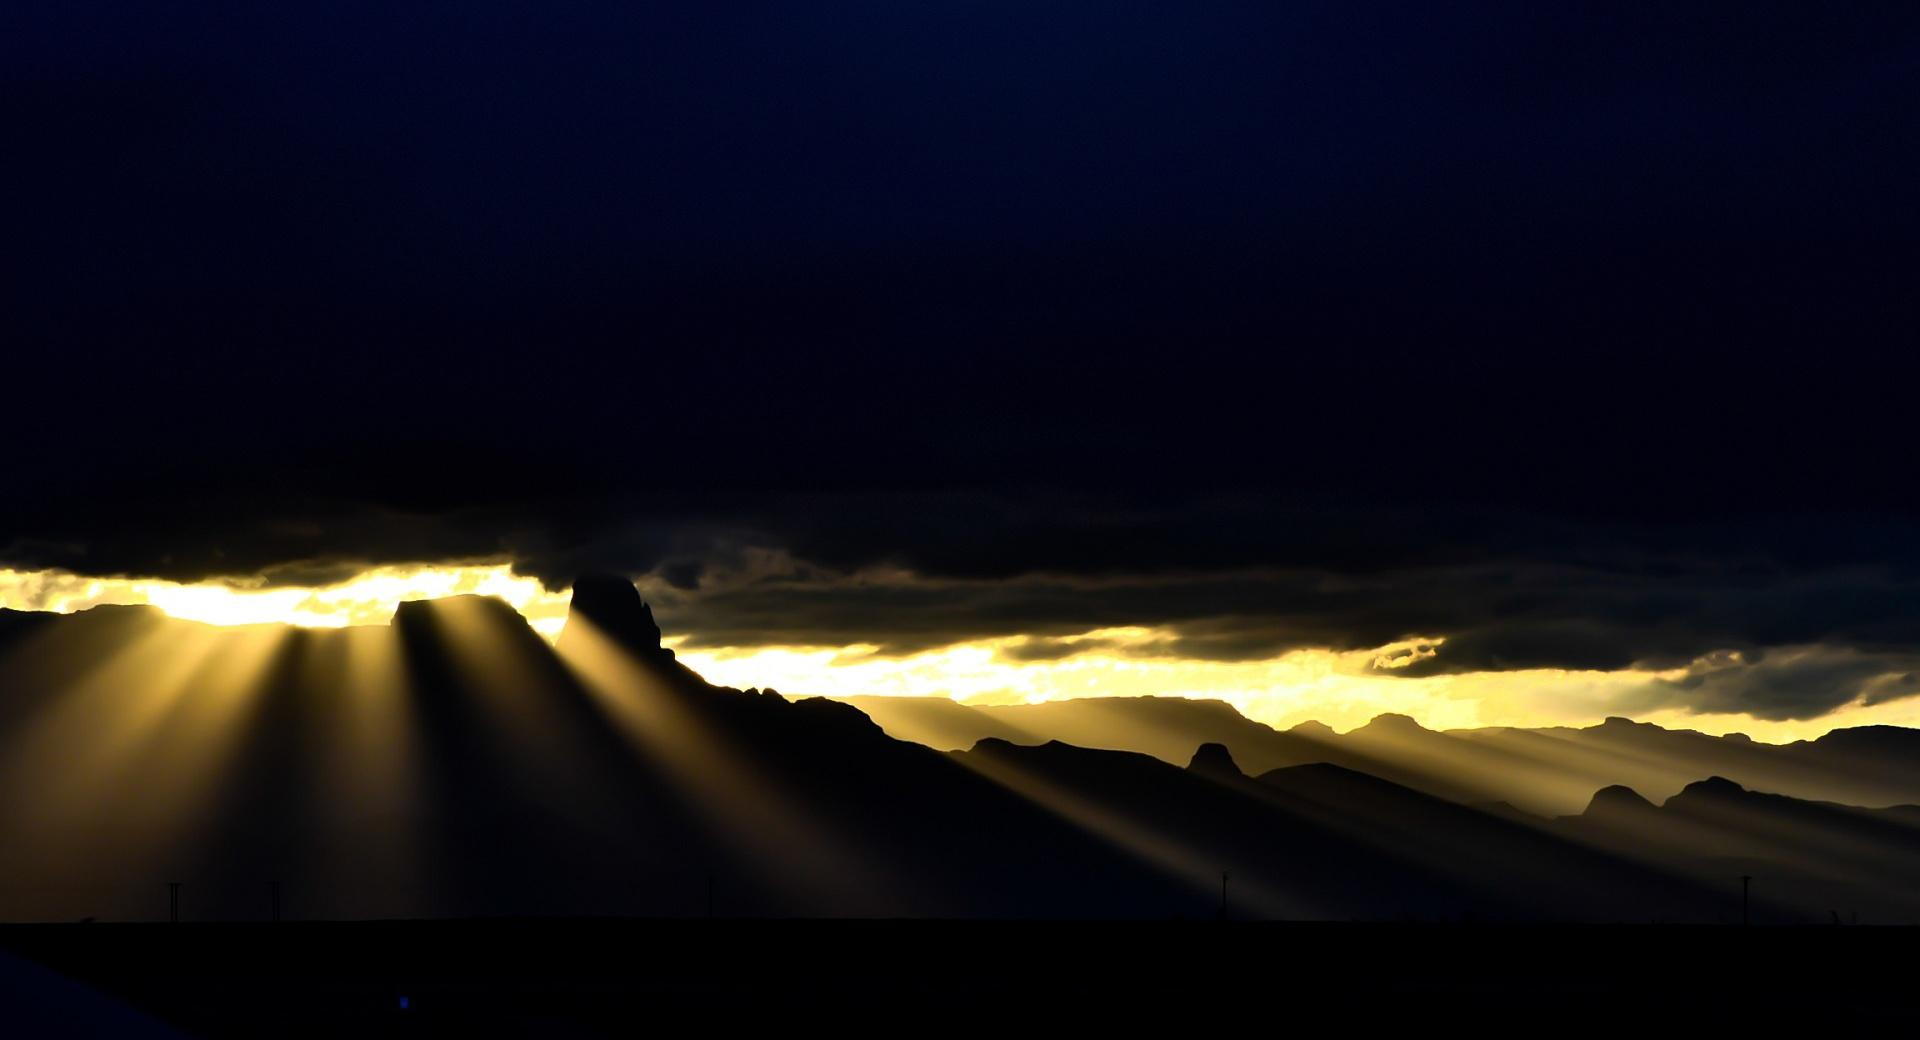 Golden Rays wallpapers HD quality